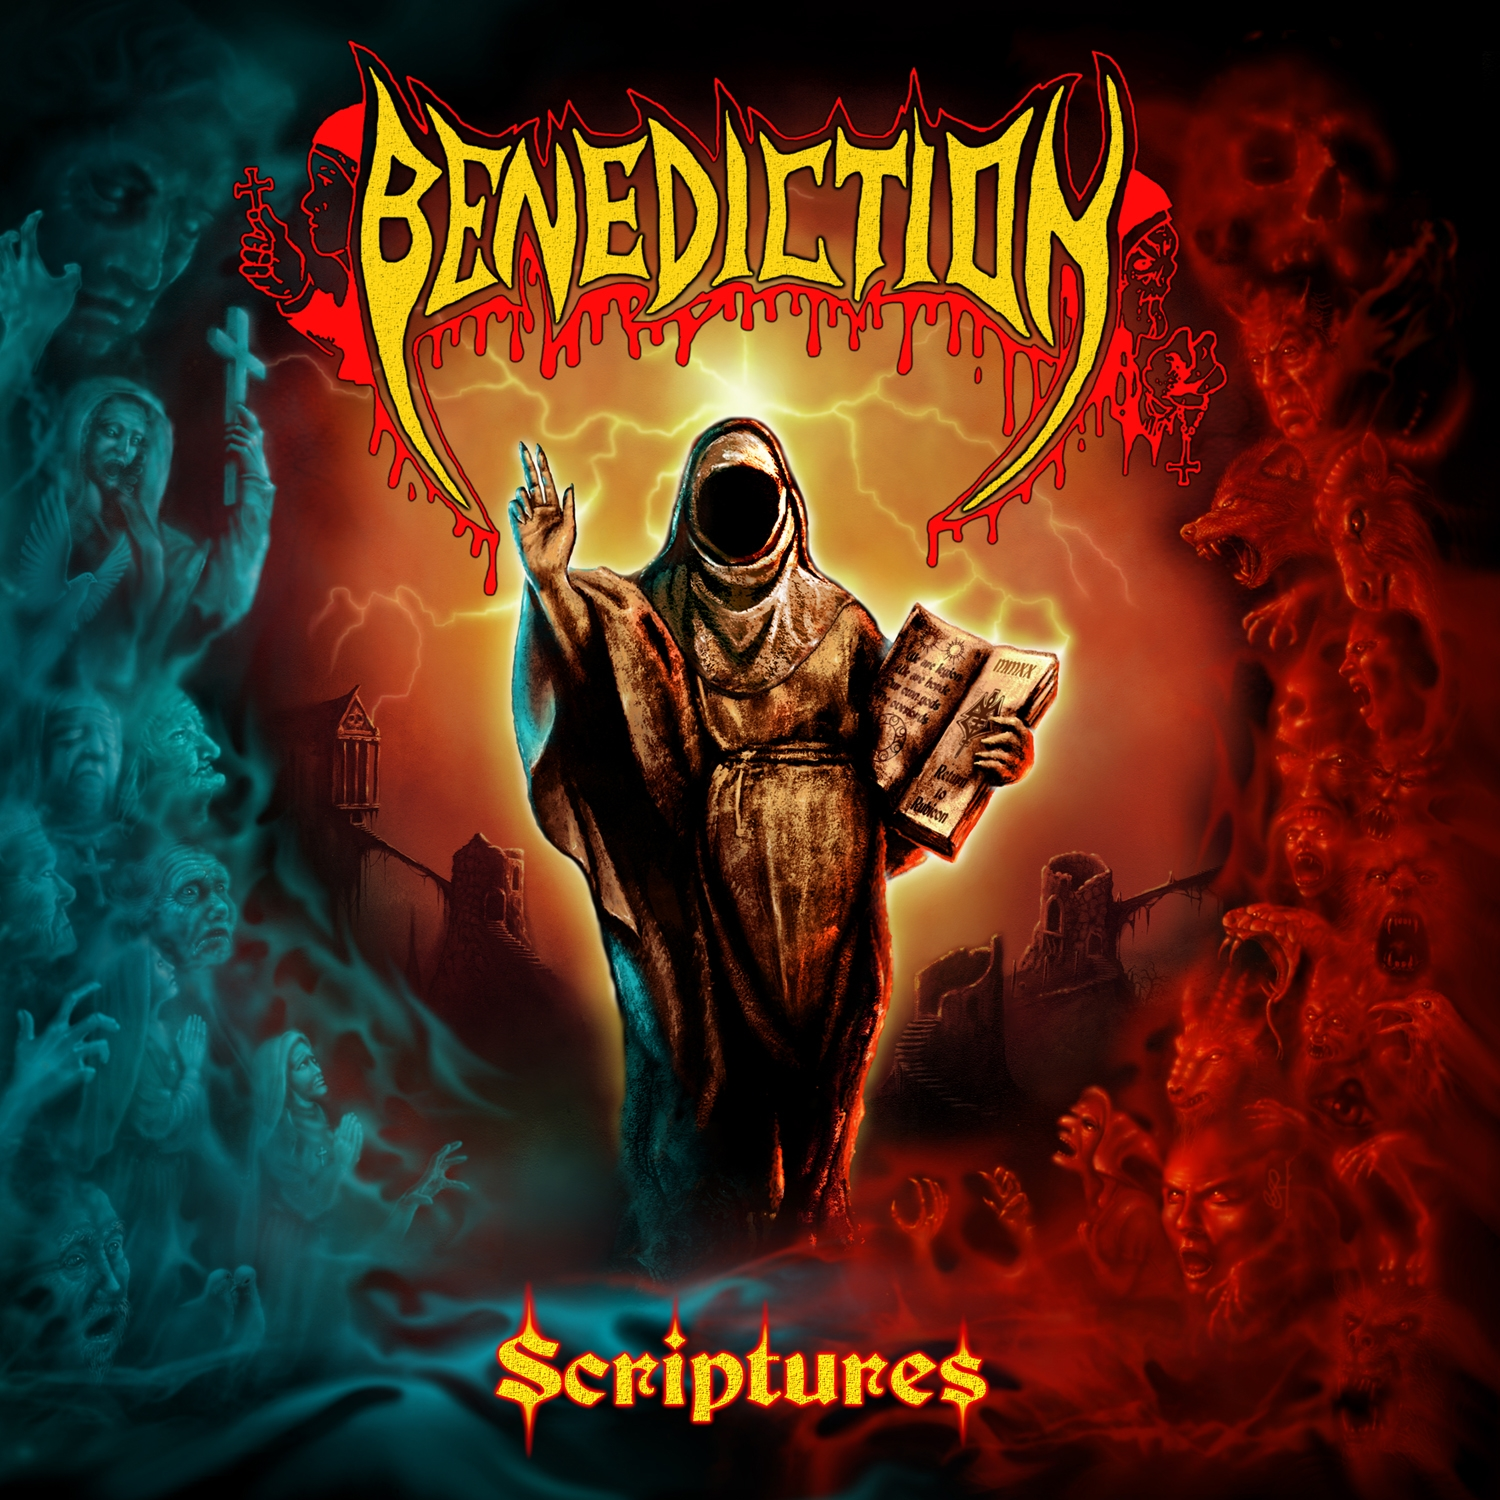 BENEDICTION : Scriptures